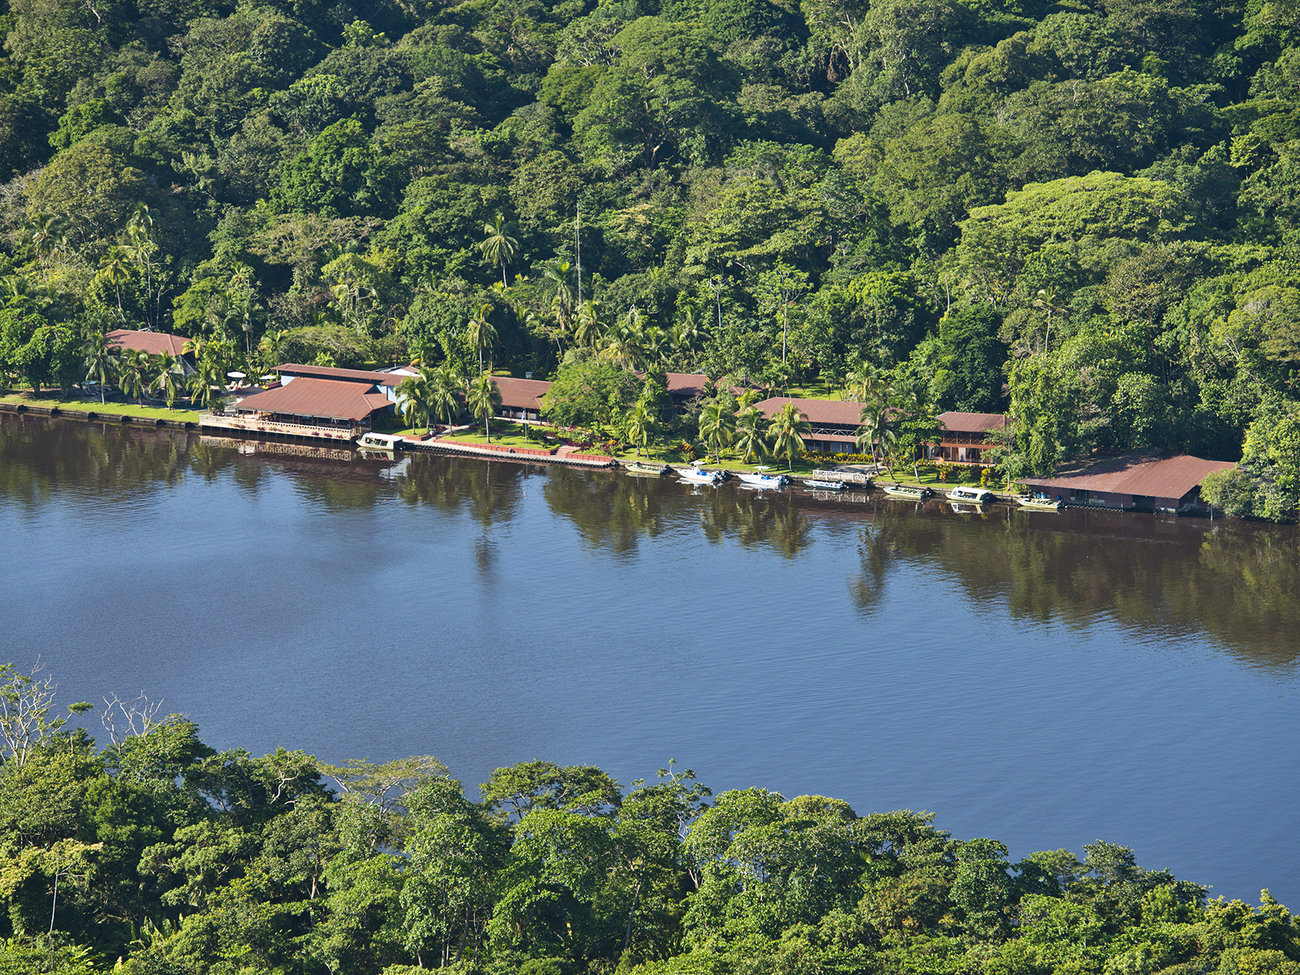 Tortuga Lodge & Gardens Hotel in Costa Rica